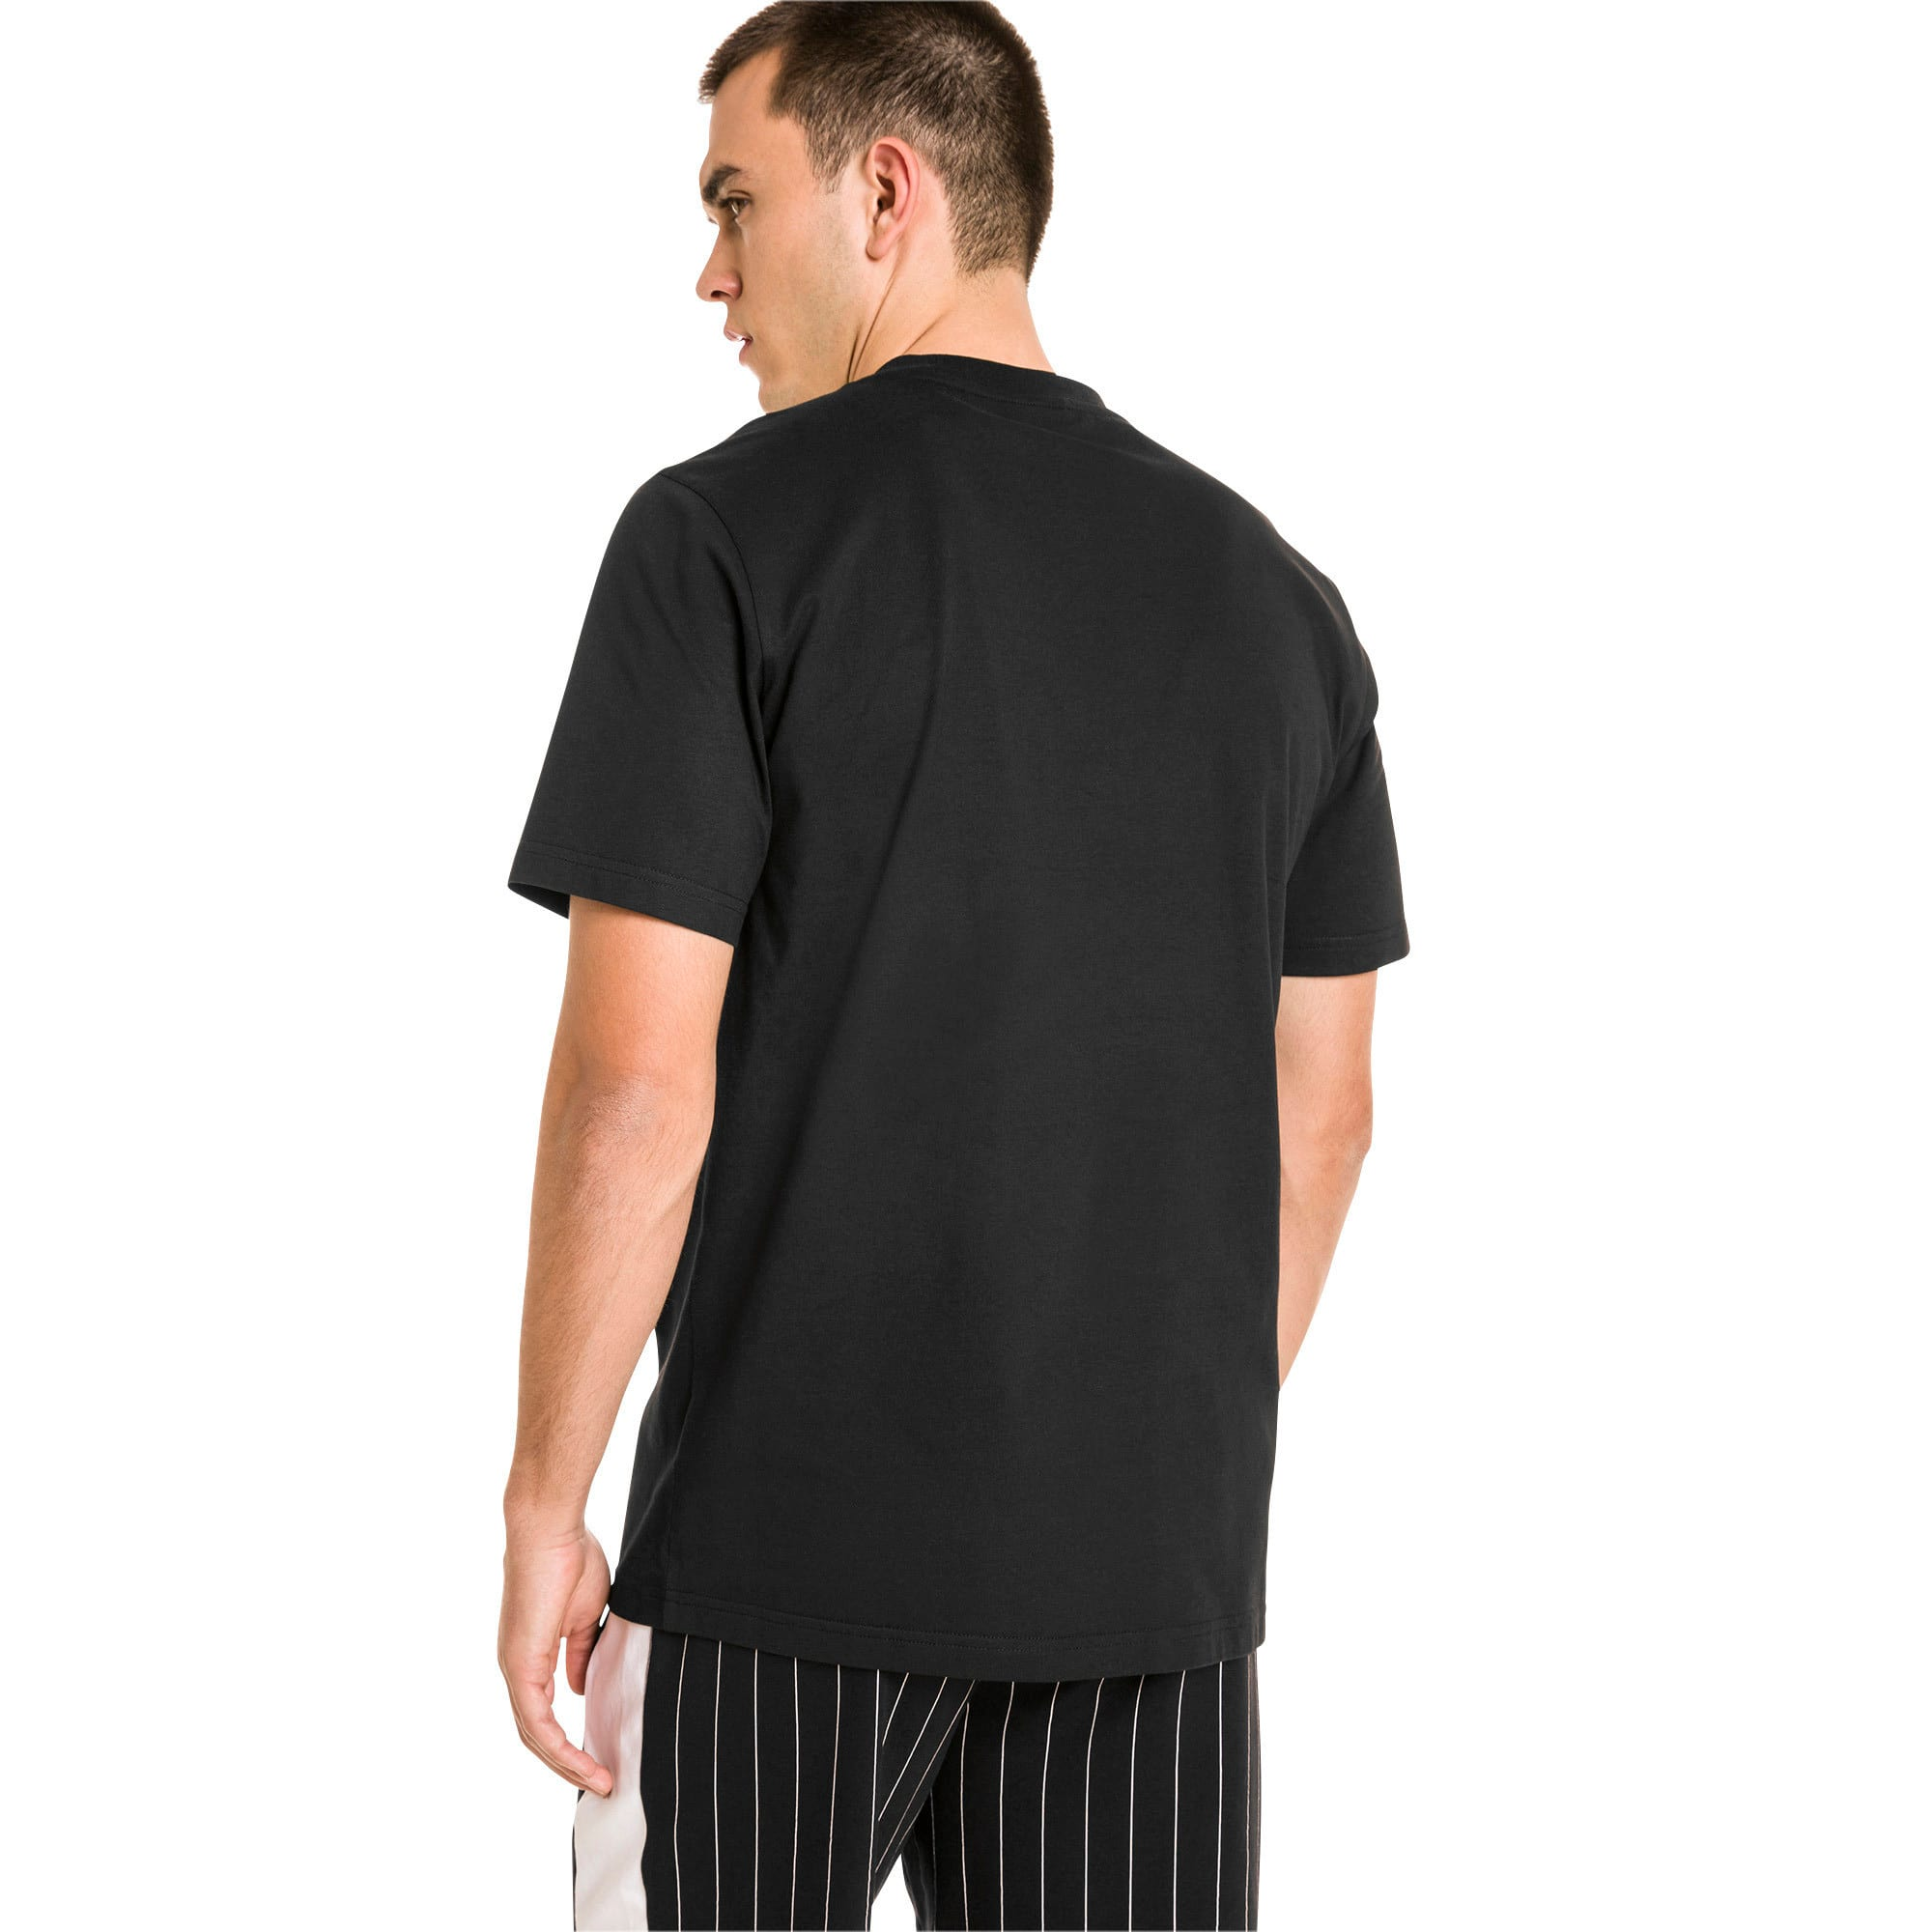 Archive Pinstripe Graphic Men's Tee, Puma Black, large